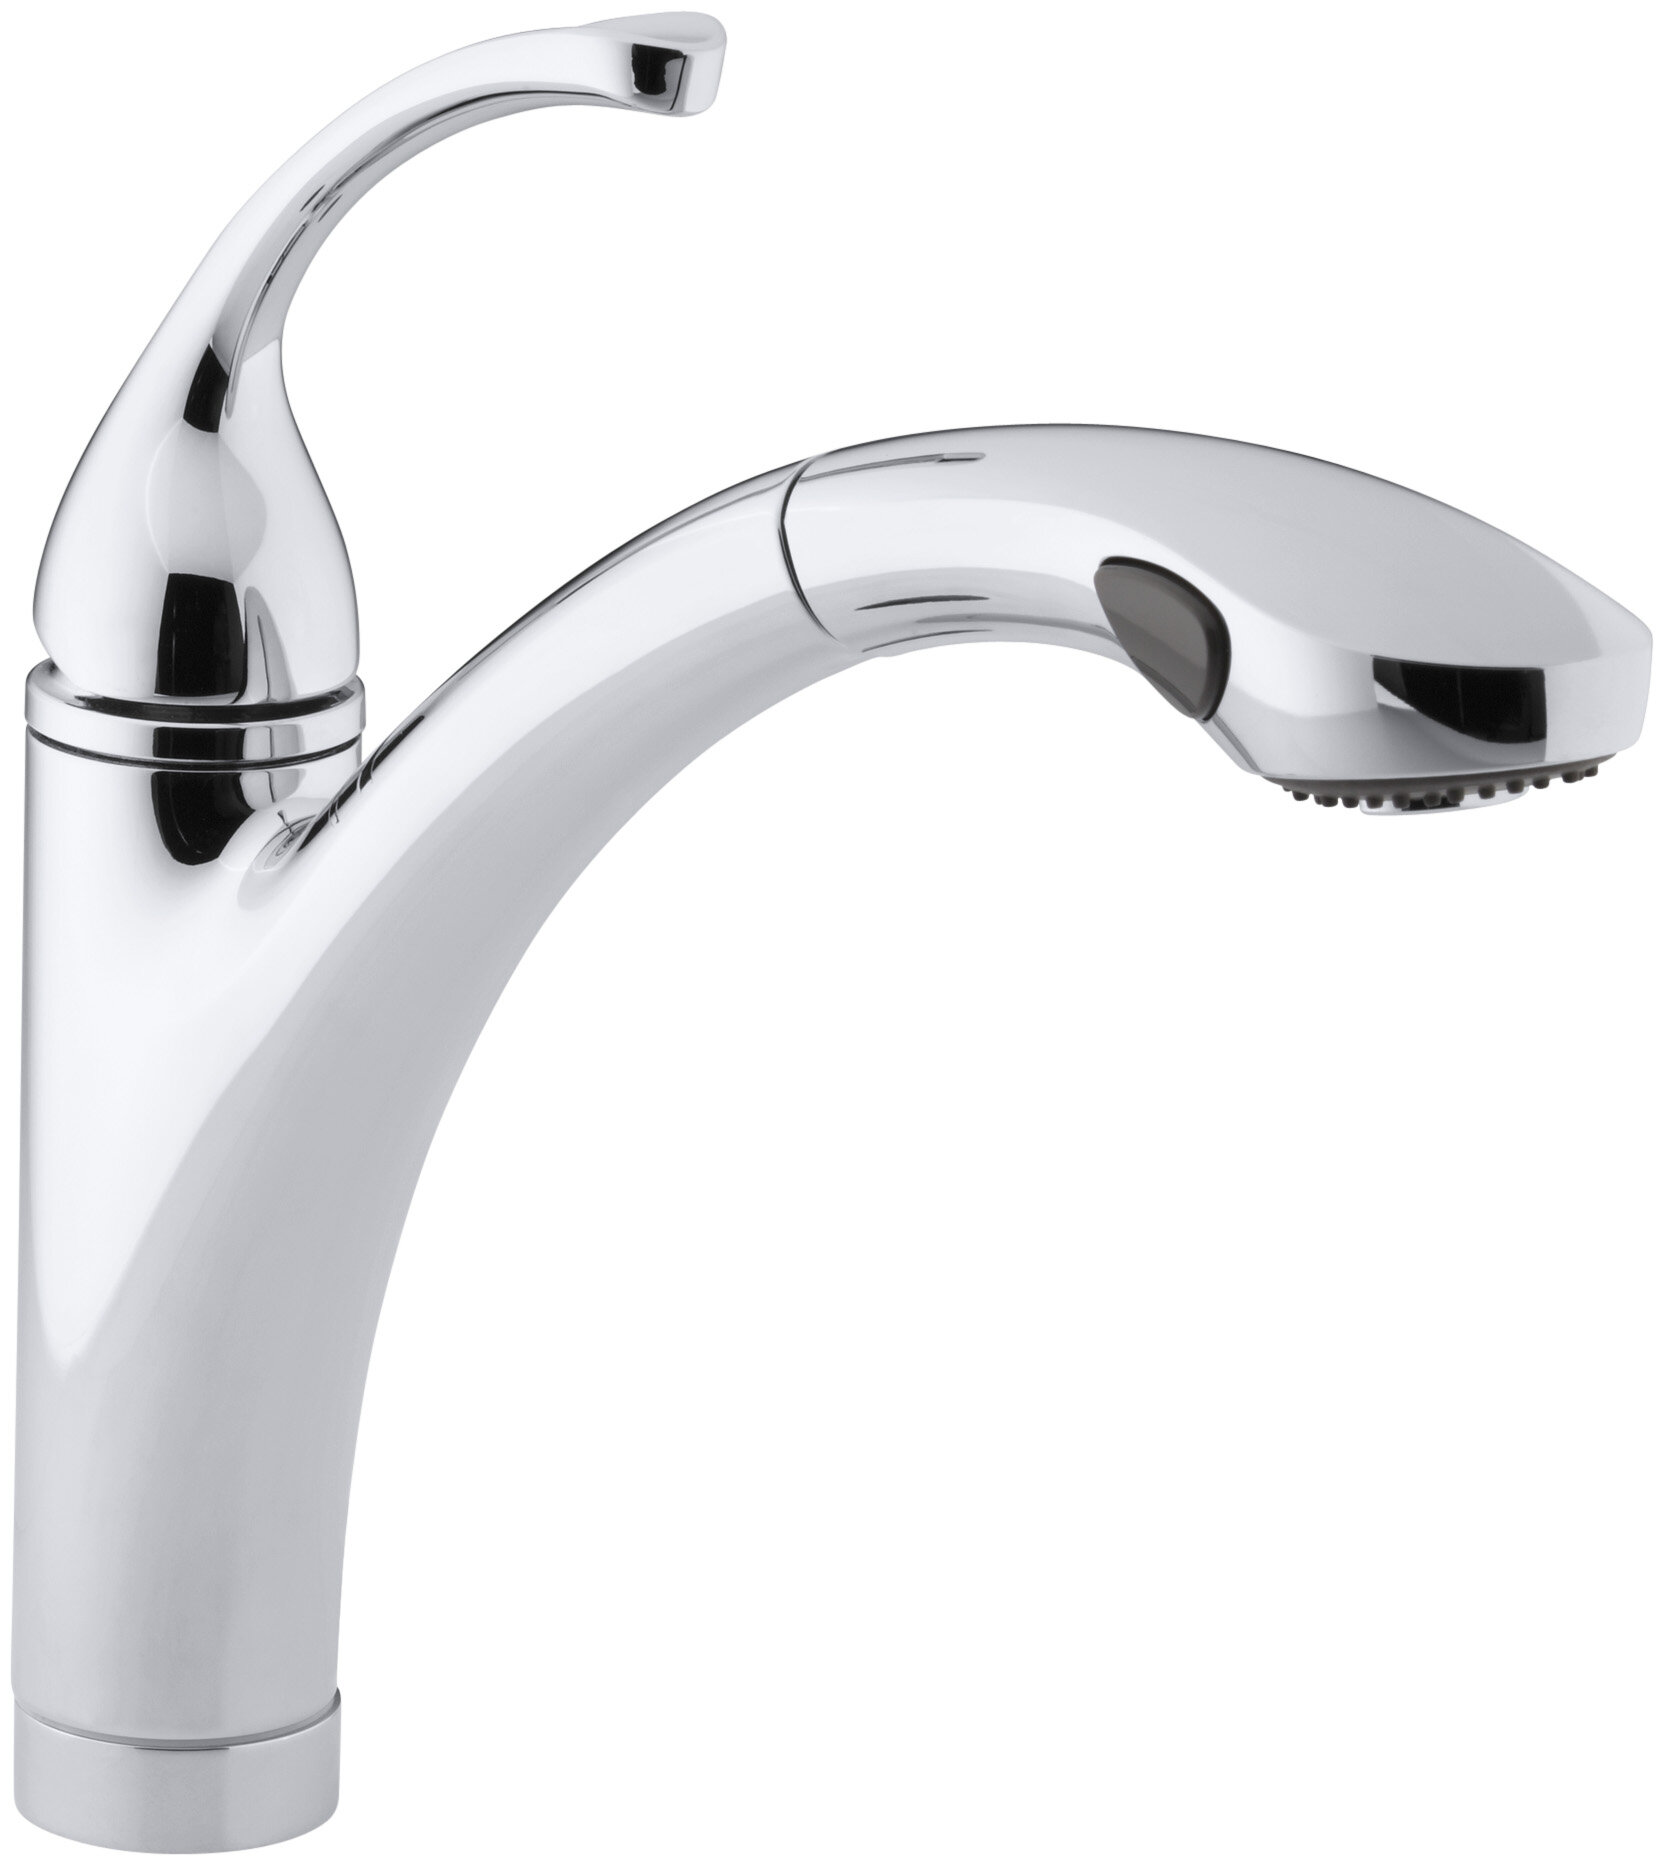 en with shop swivel spout integrated plate sink products faucet and out spray hand pull kitchen